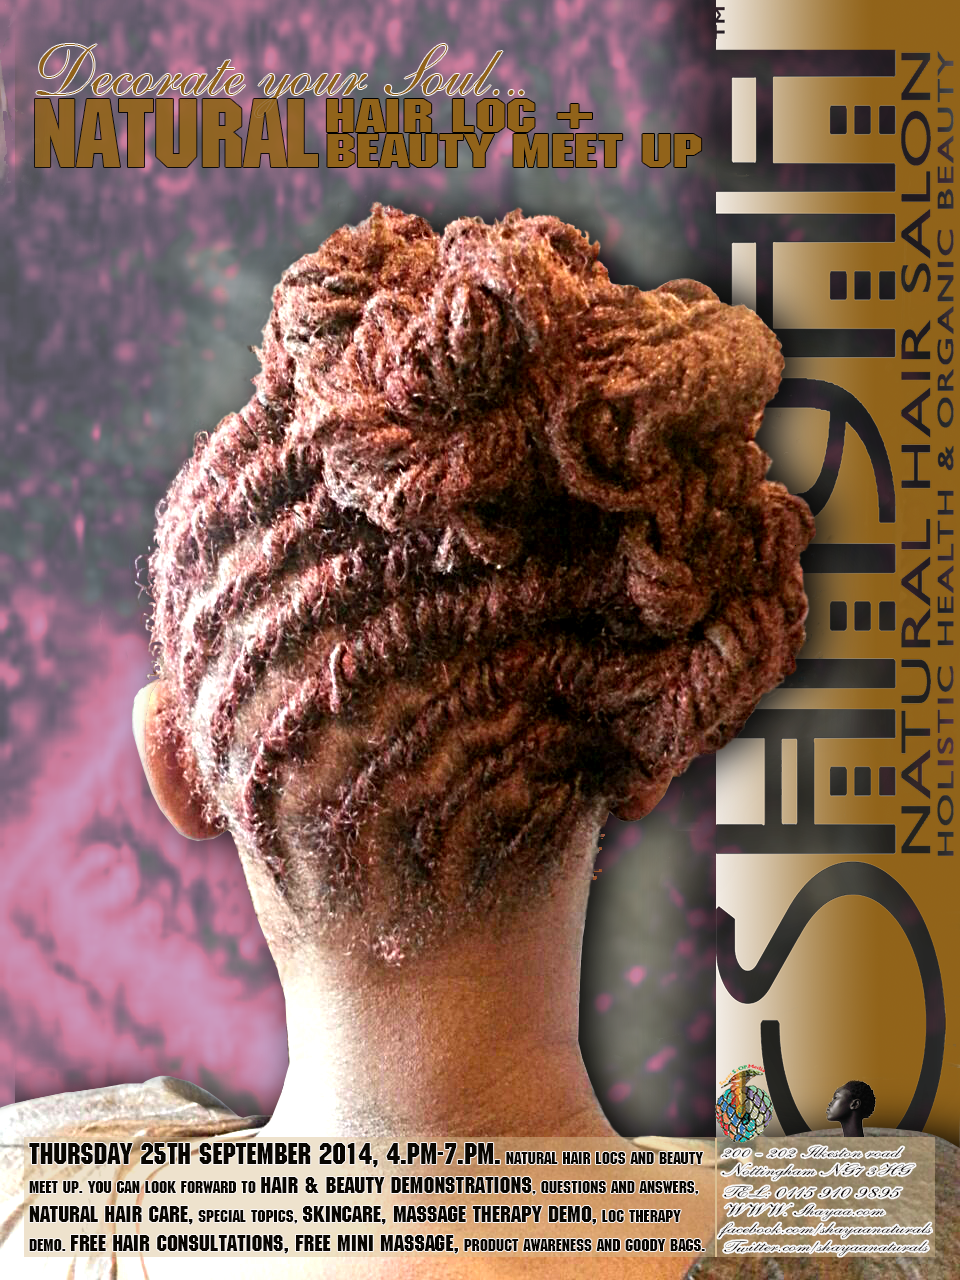 Shayaa Natural hair, locs & beauty